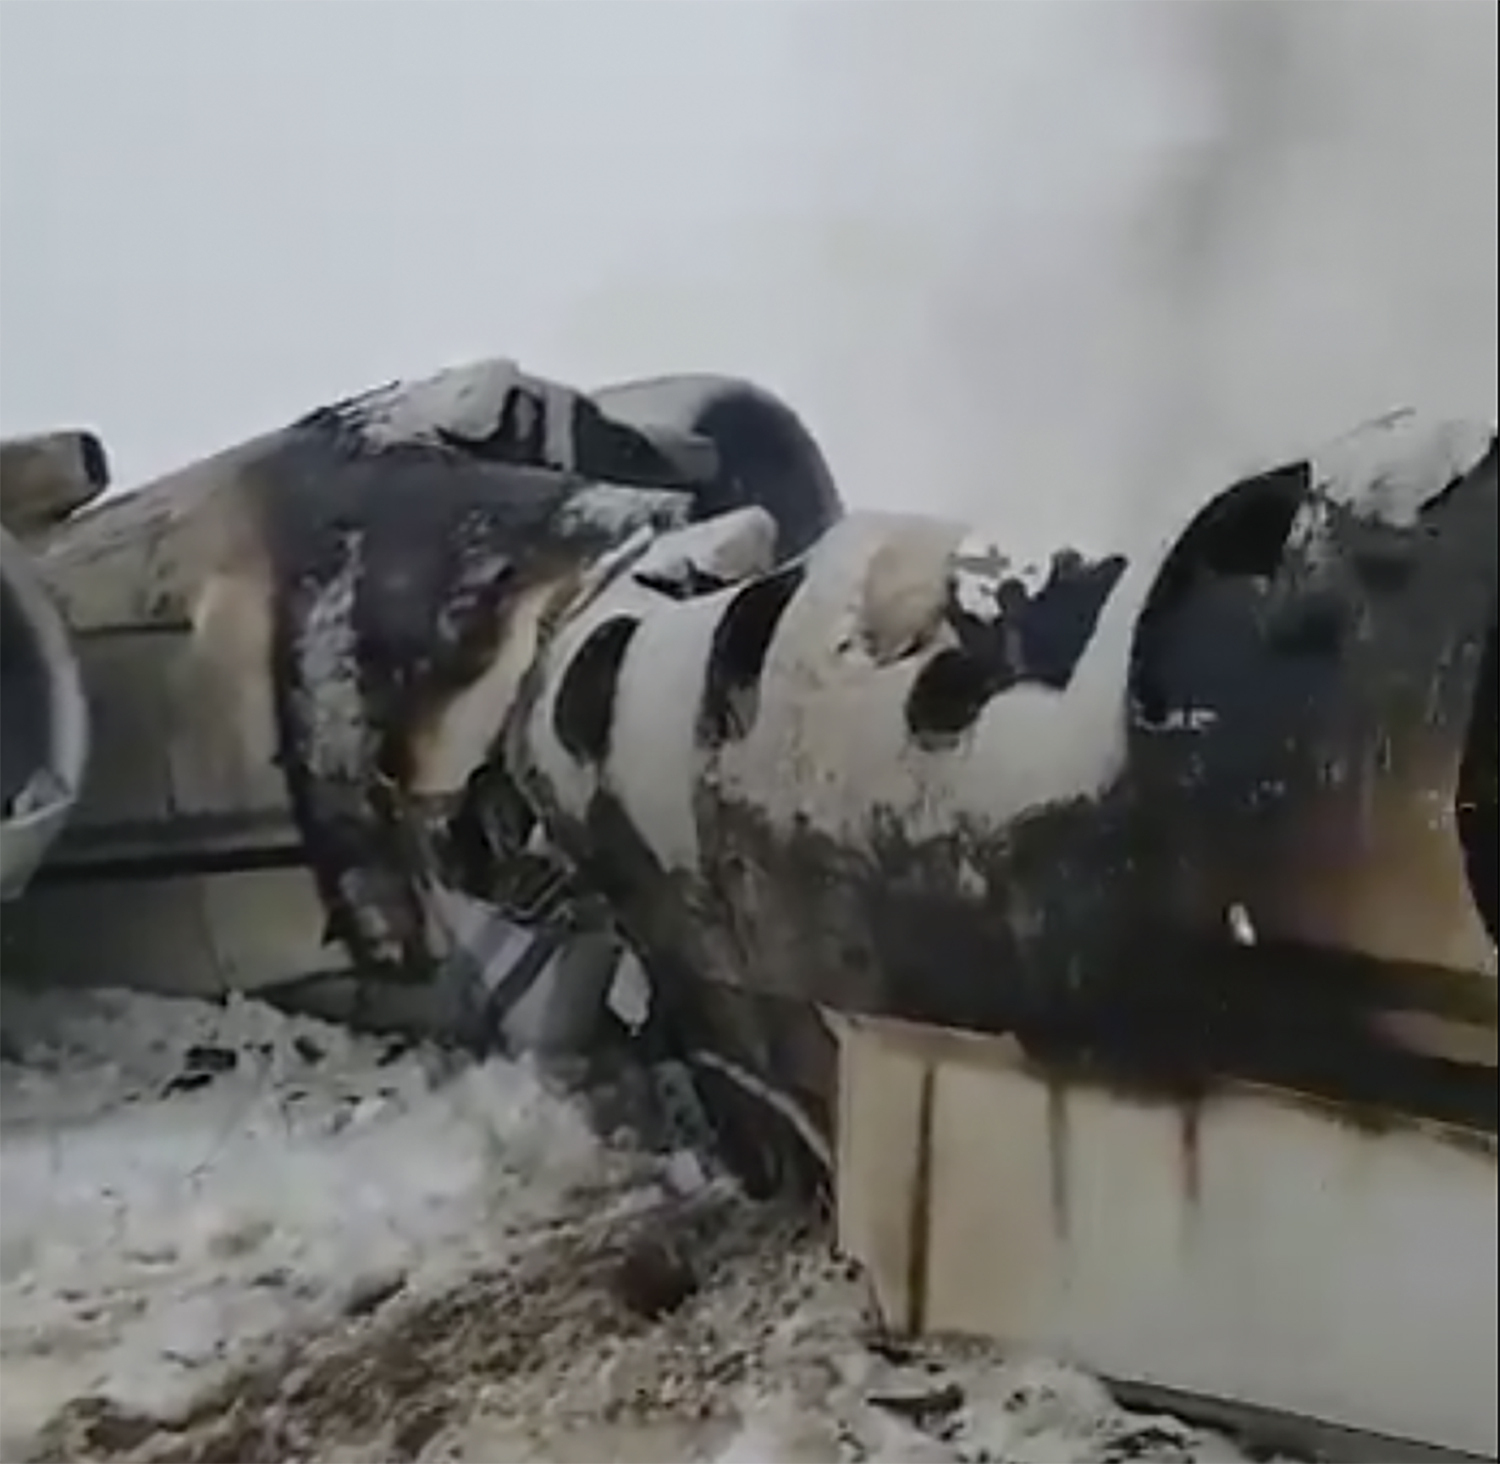 Taliban claims U.S. military plane crashed in Afghanistan